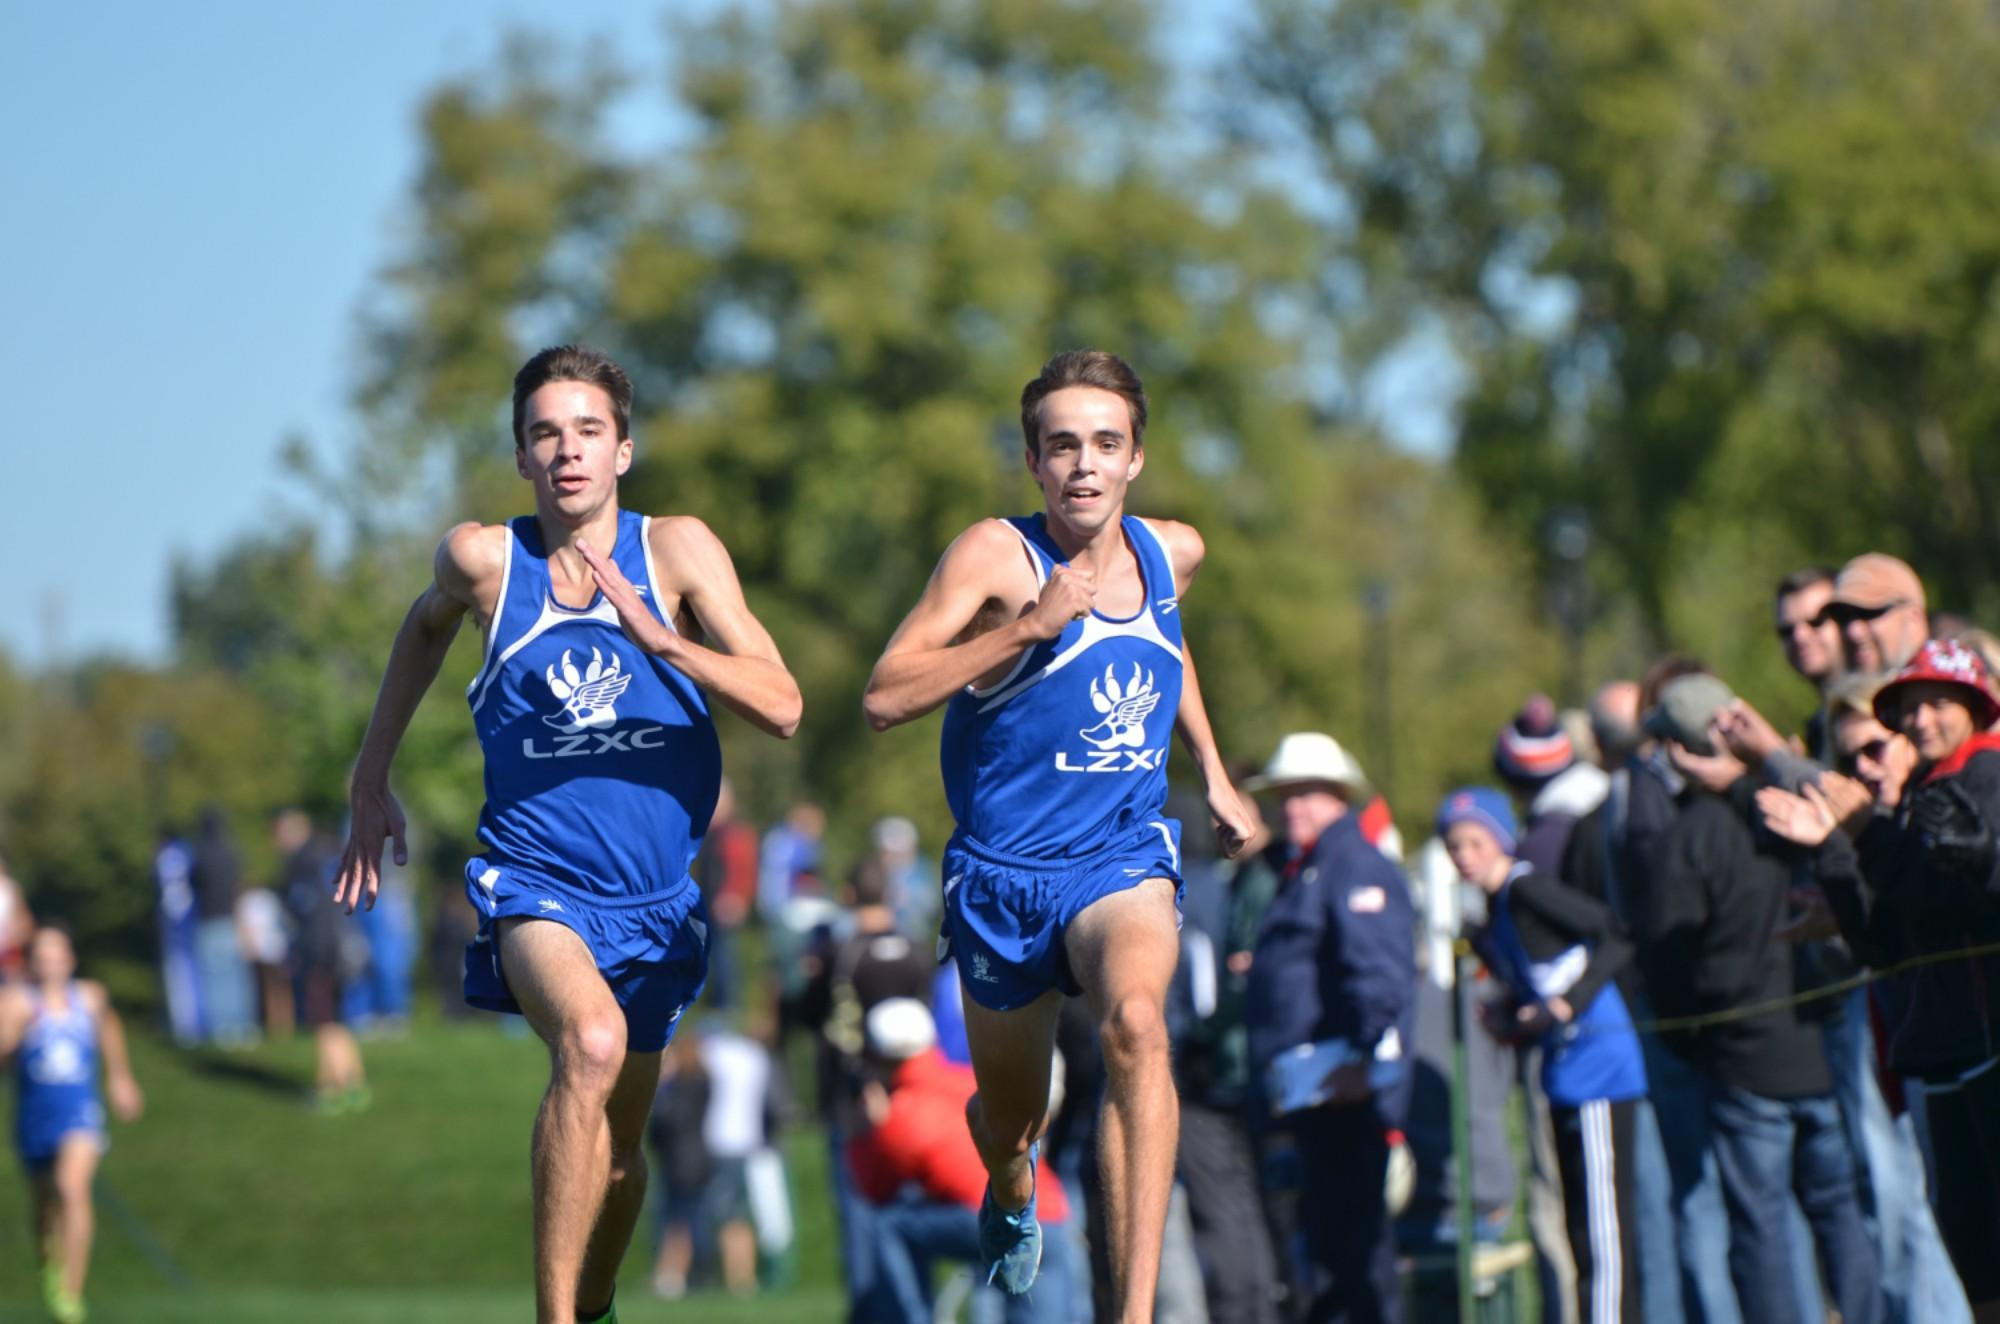 Brian Griffith and Matt Periera, seniors, are the first non-siblings to qualify to nationals from the same team in over 30 years. The teammates will compete at the Foot Locker Nationals Saturday at 10am in San Diego, California.